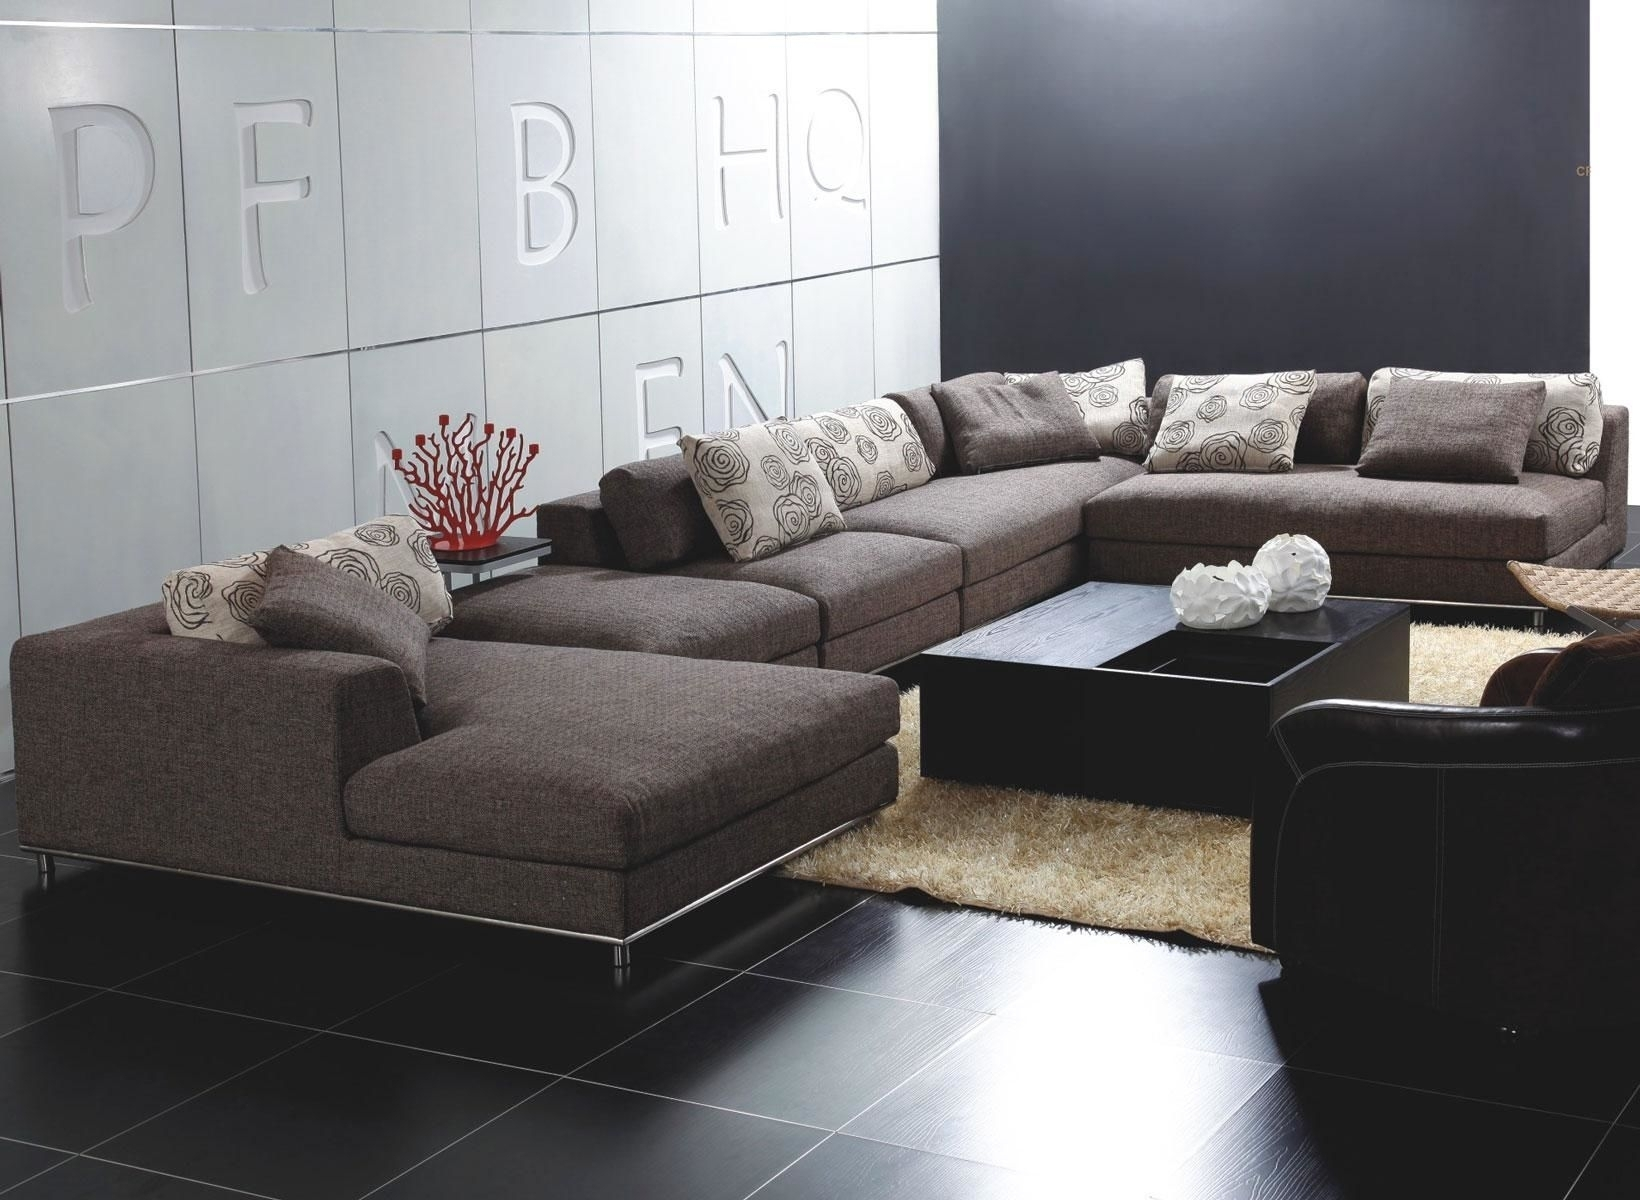 Brilliant Sectional Sofas Austin Tx – Buildsimplehome Regarding Sectional Sofas At Austin (View 3 of 15)